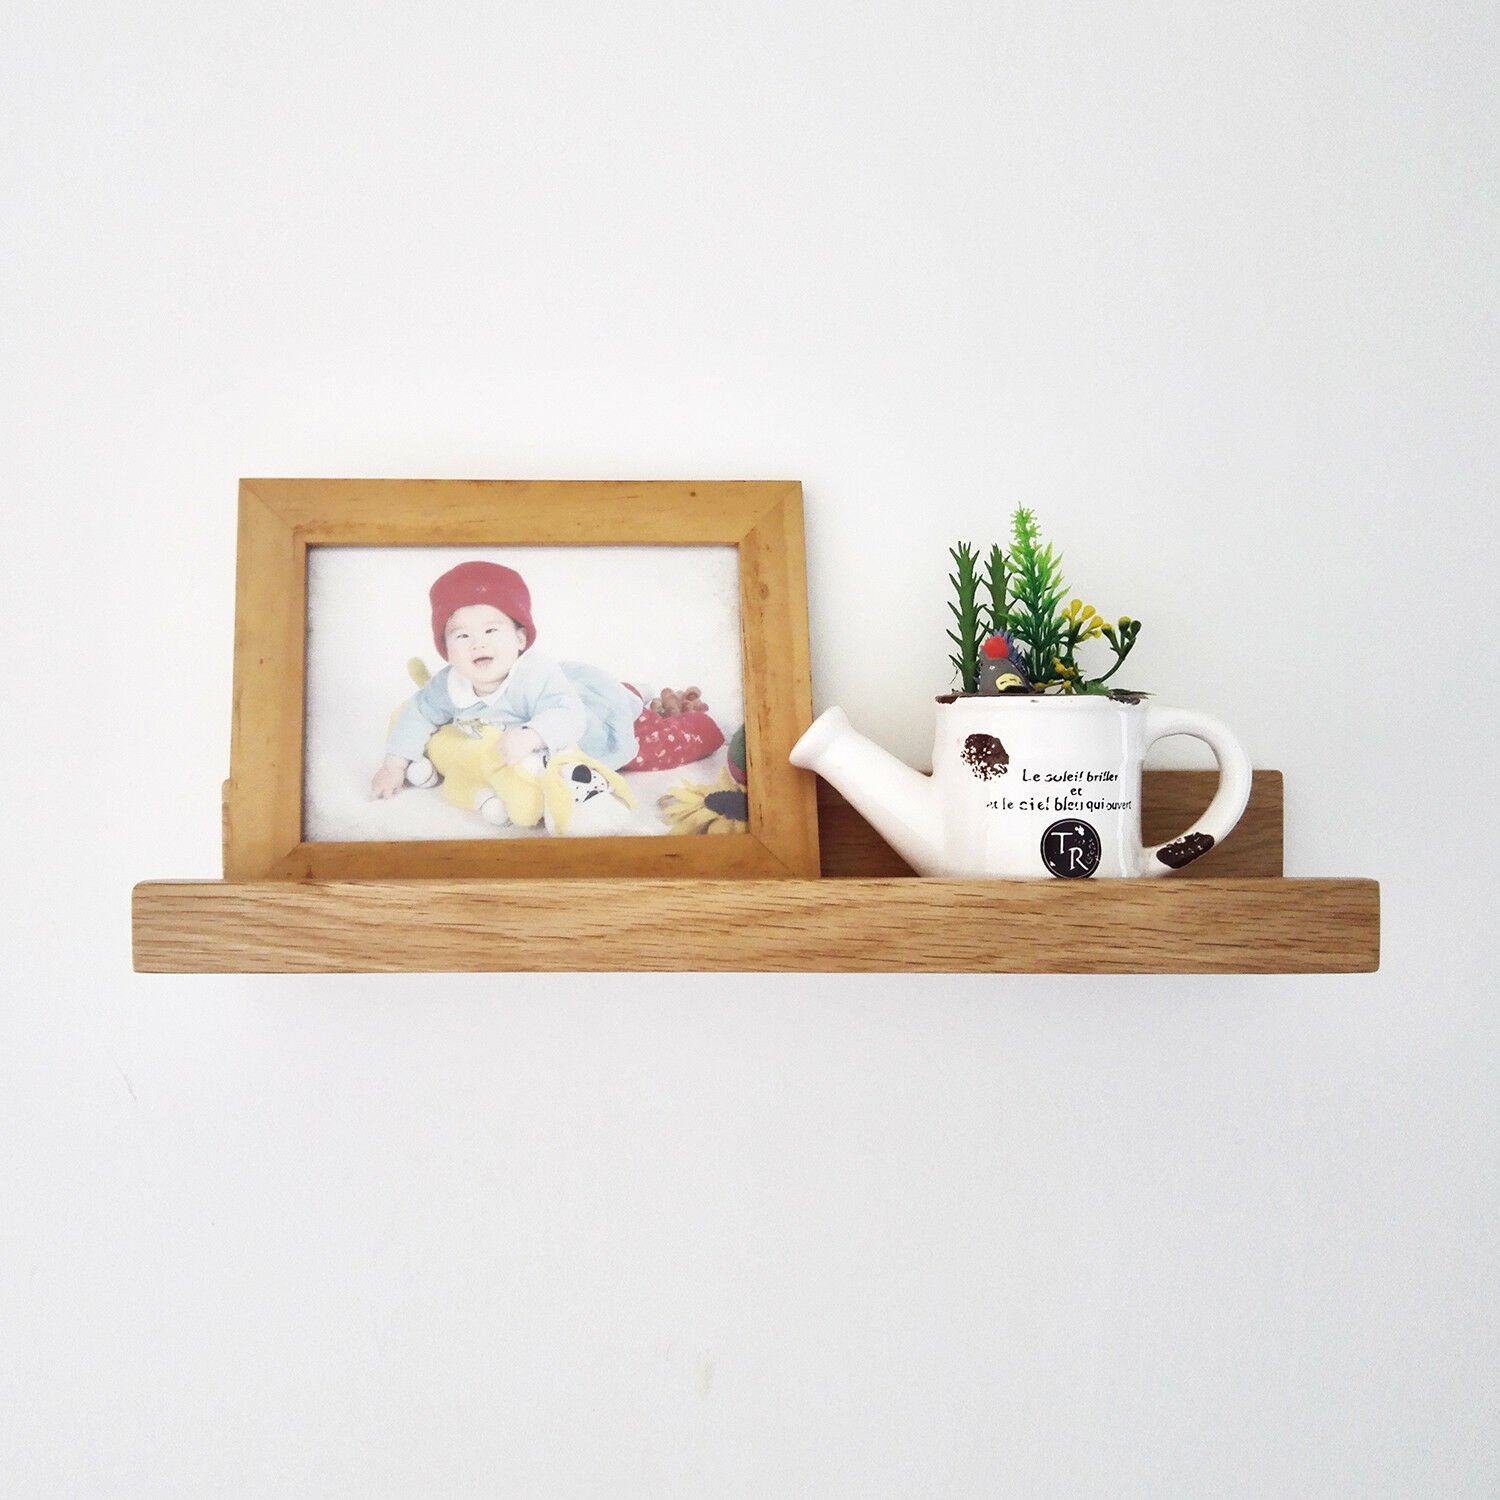 U-shape Photo Rack Rustic wood Storage Display  Wall Mount Floating Shelves 40cm